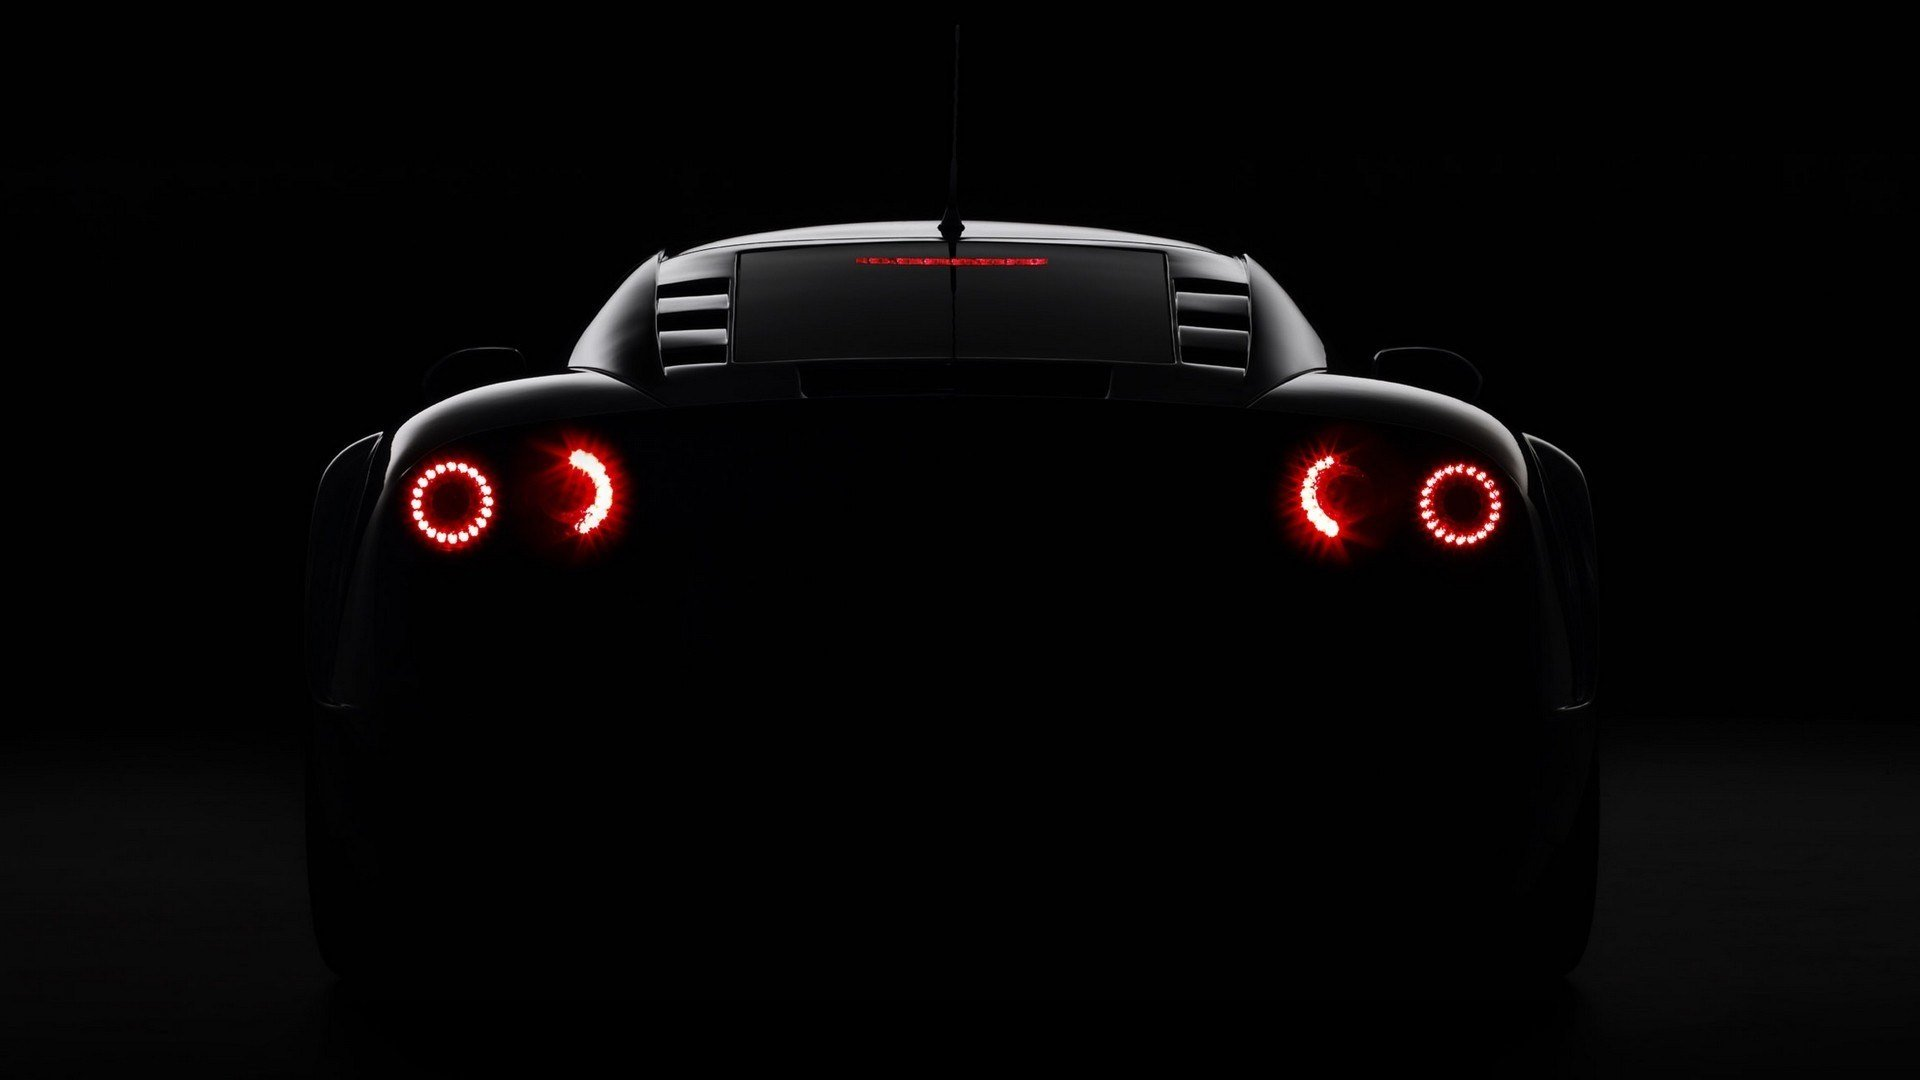 Latest Car Bugatti Veyron Lights Wallpapers Hd Desktop And Free Download